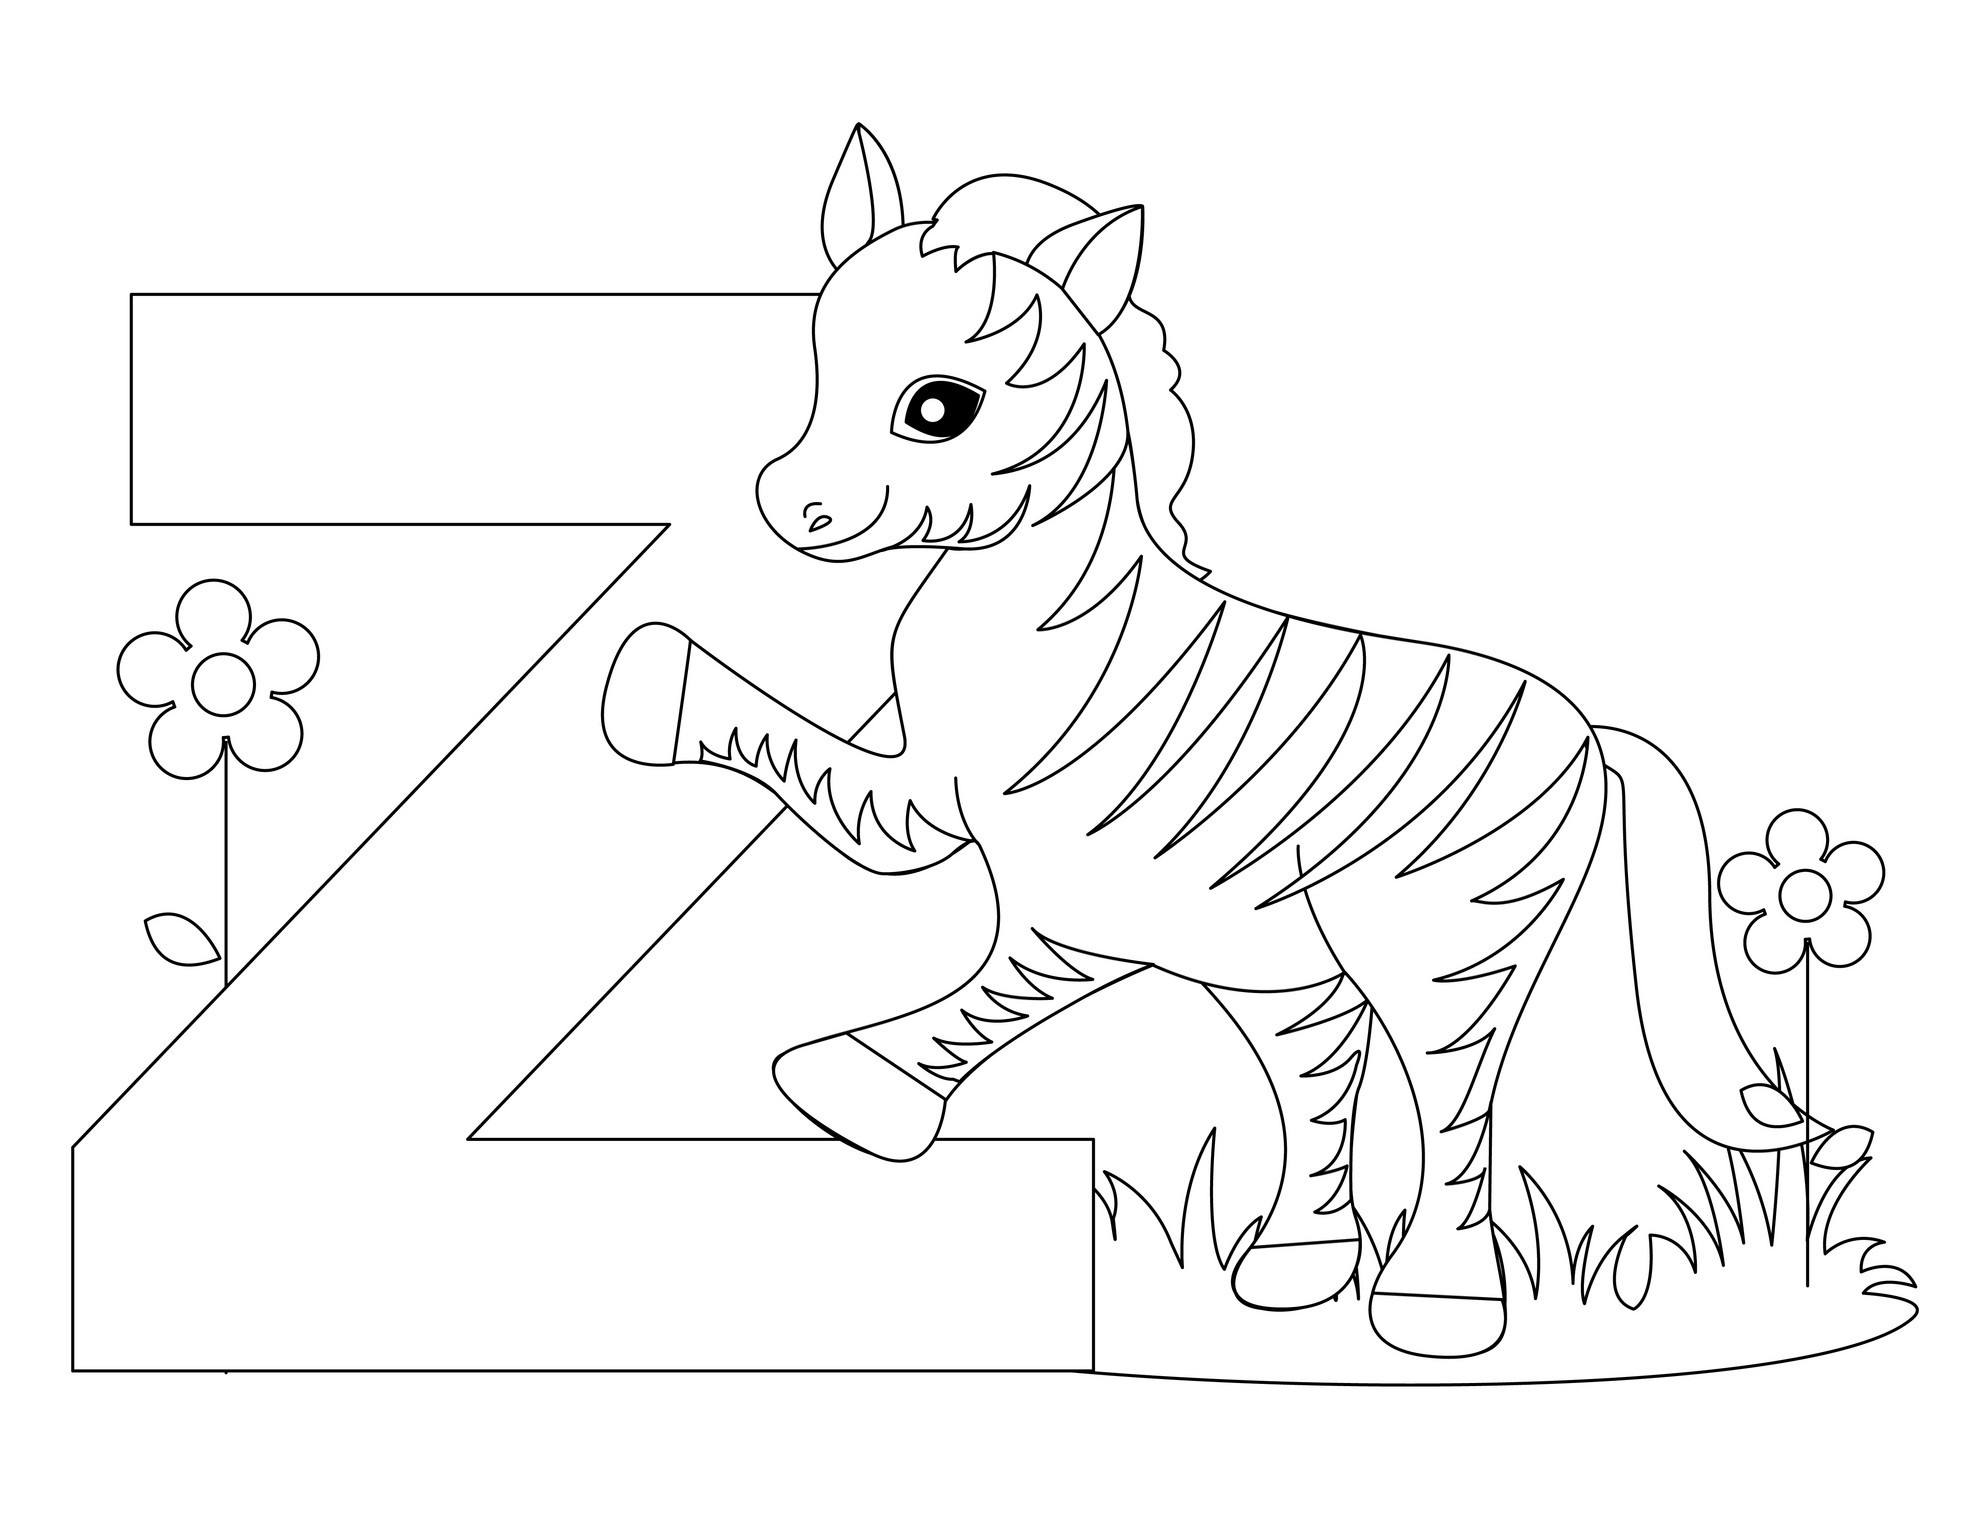 It's just a picture of Zany Letter Printable Coloring Pages